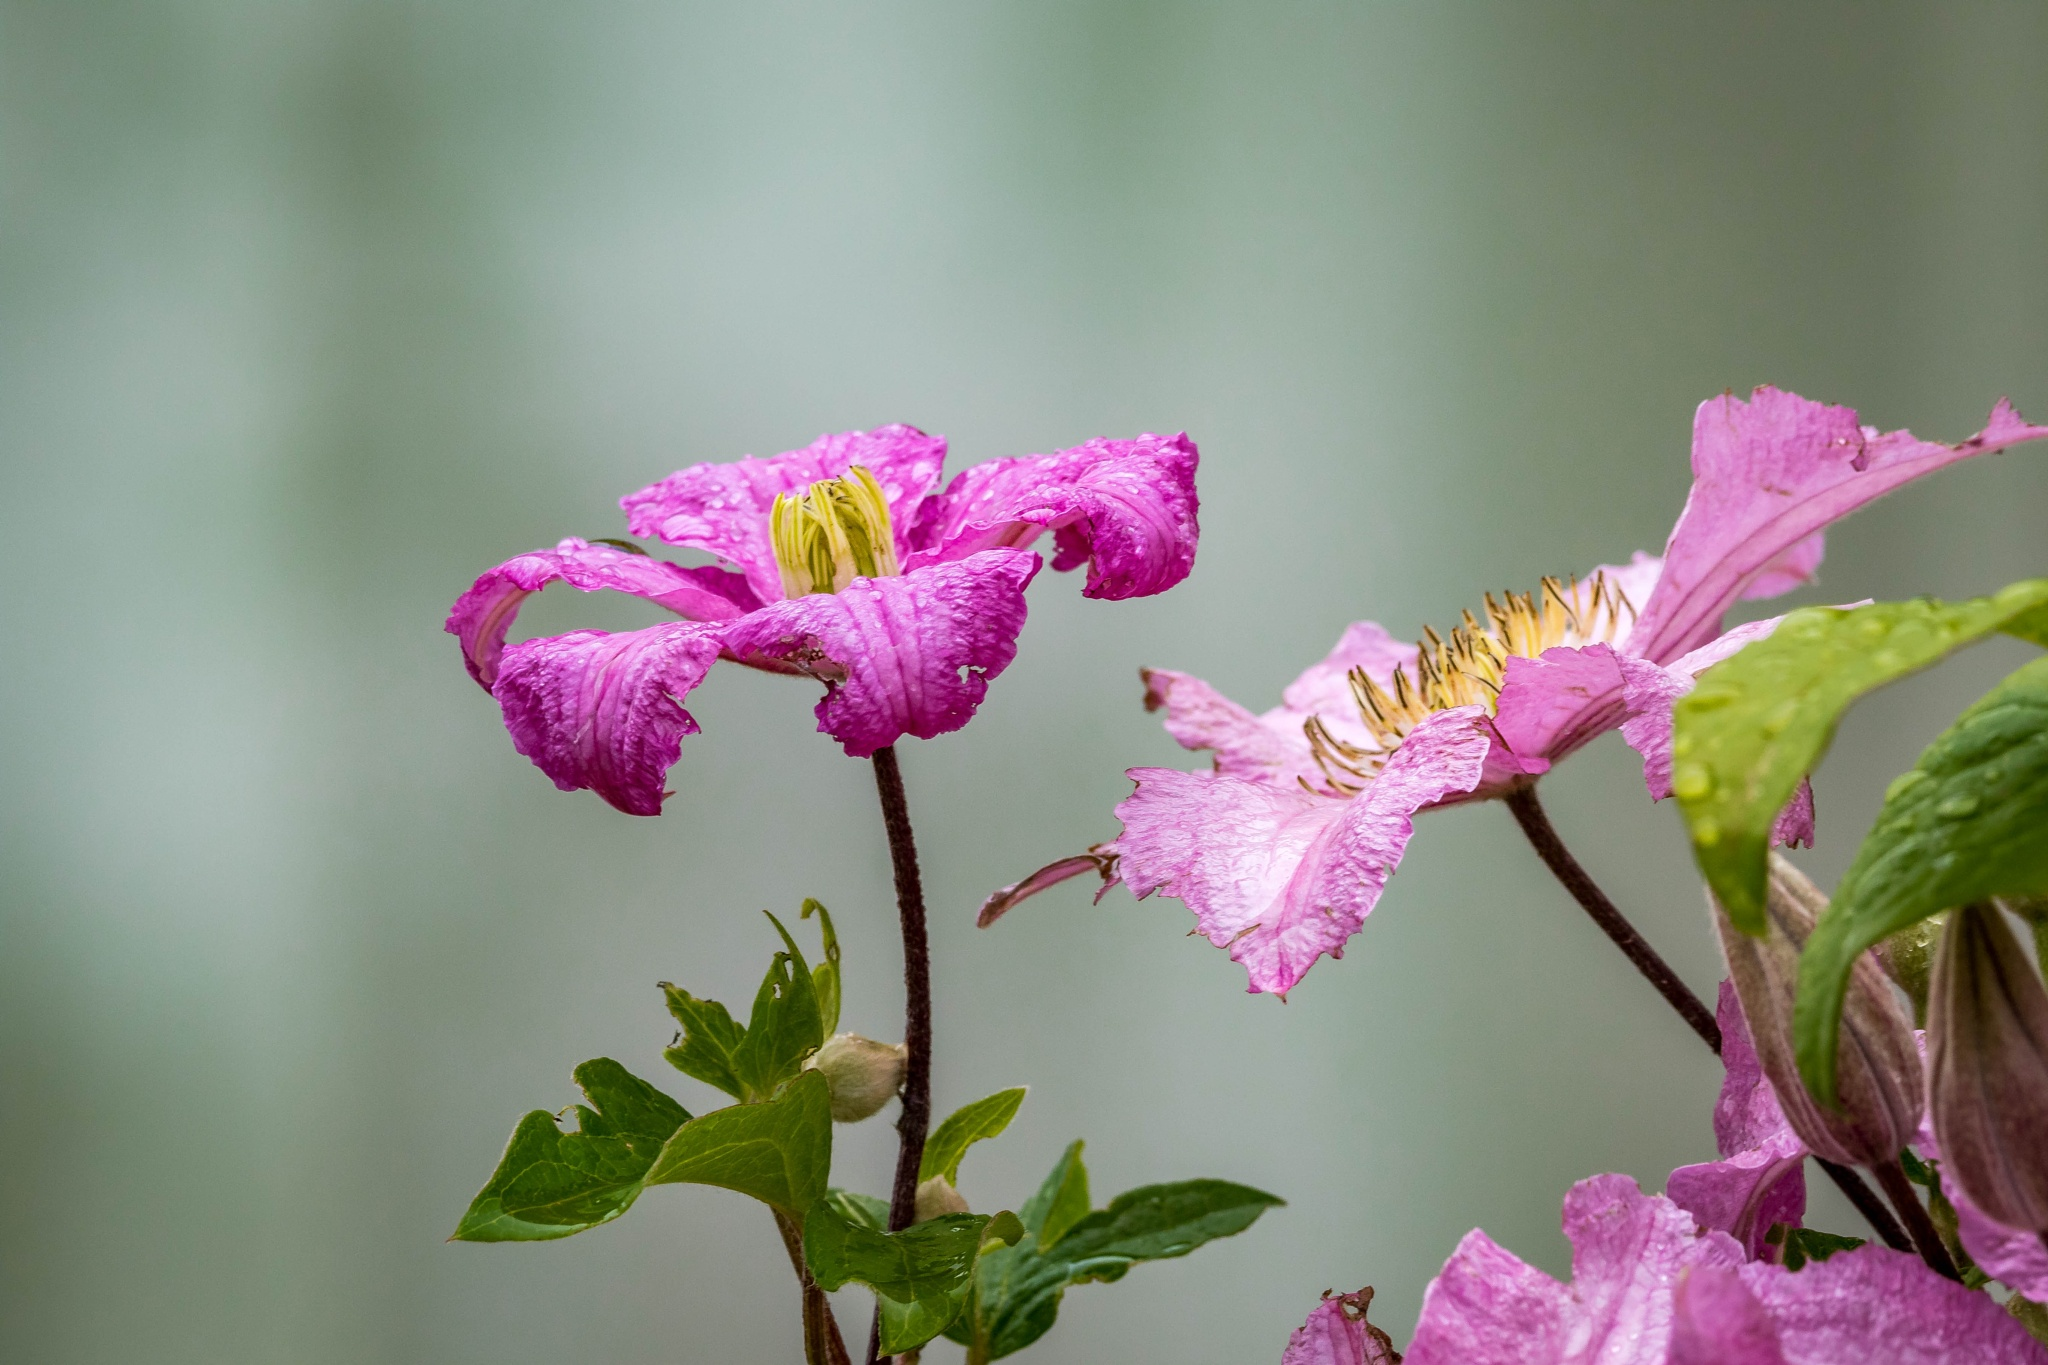 Clematis Vine by drchad480